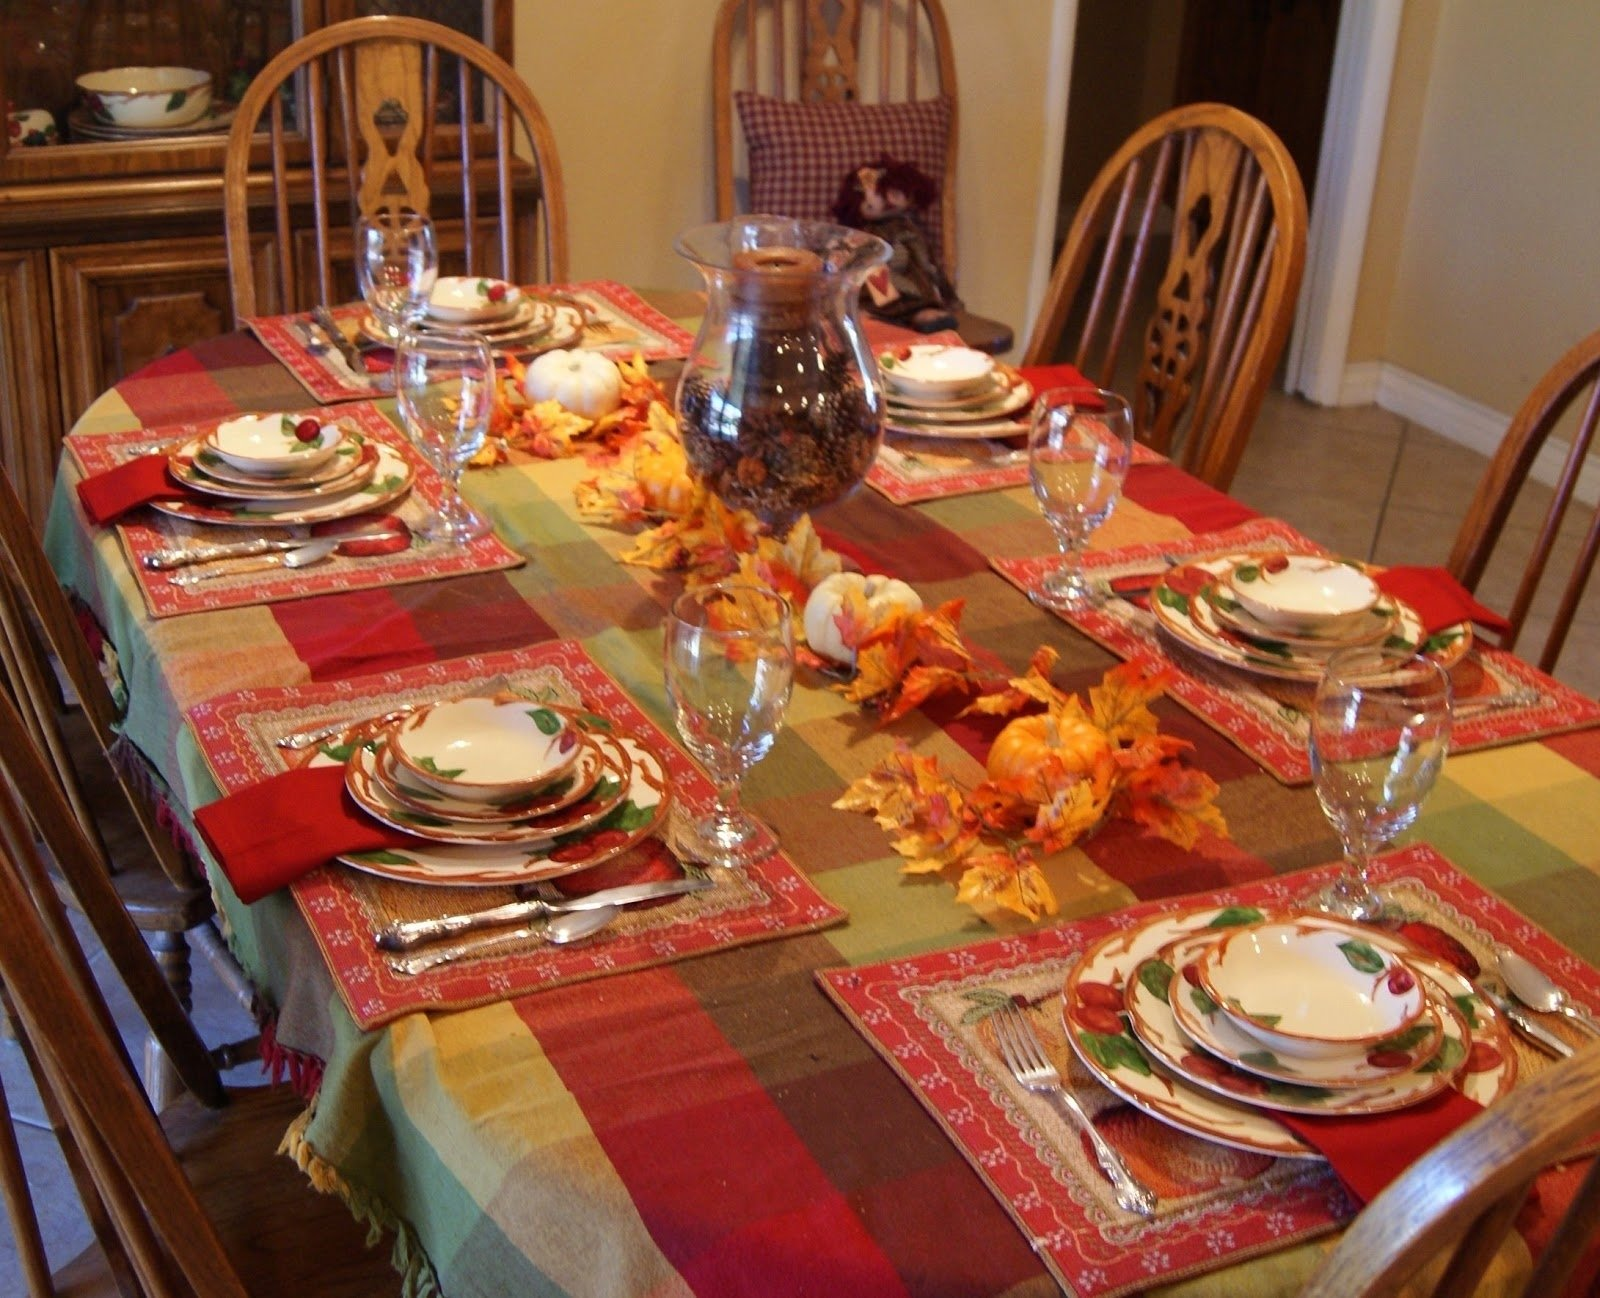 10 Wonderful Thanksgiving Table Setting Ideas Easy cool home thanksgiving porch decor ideas with orange pumkins on